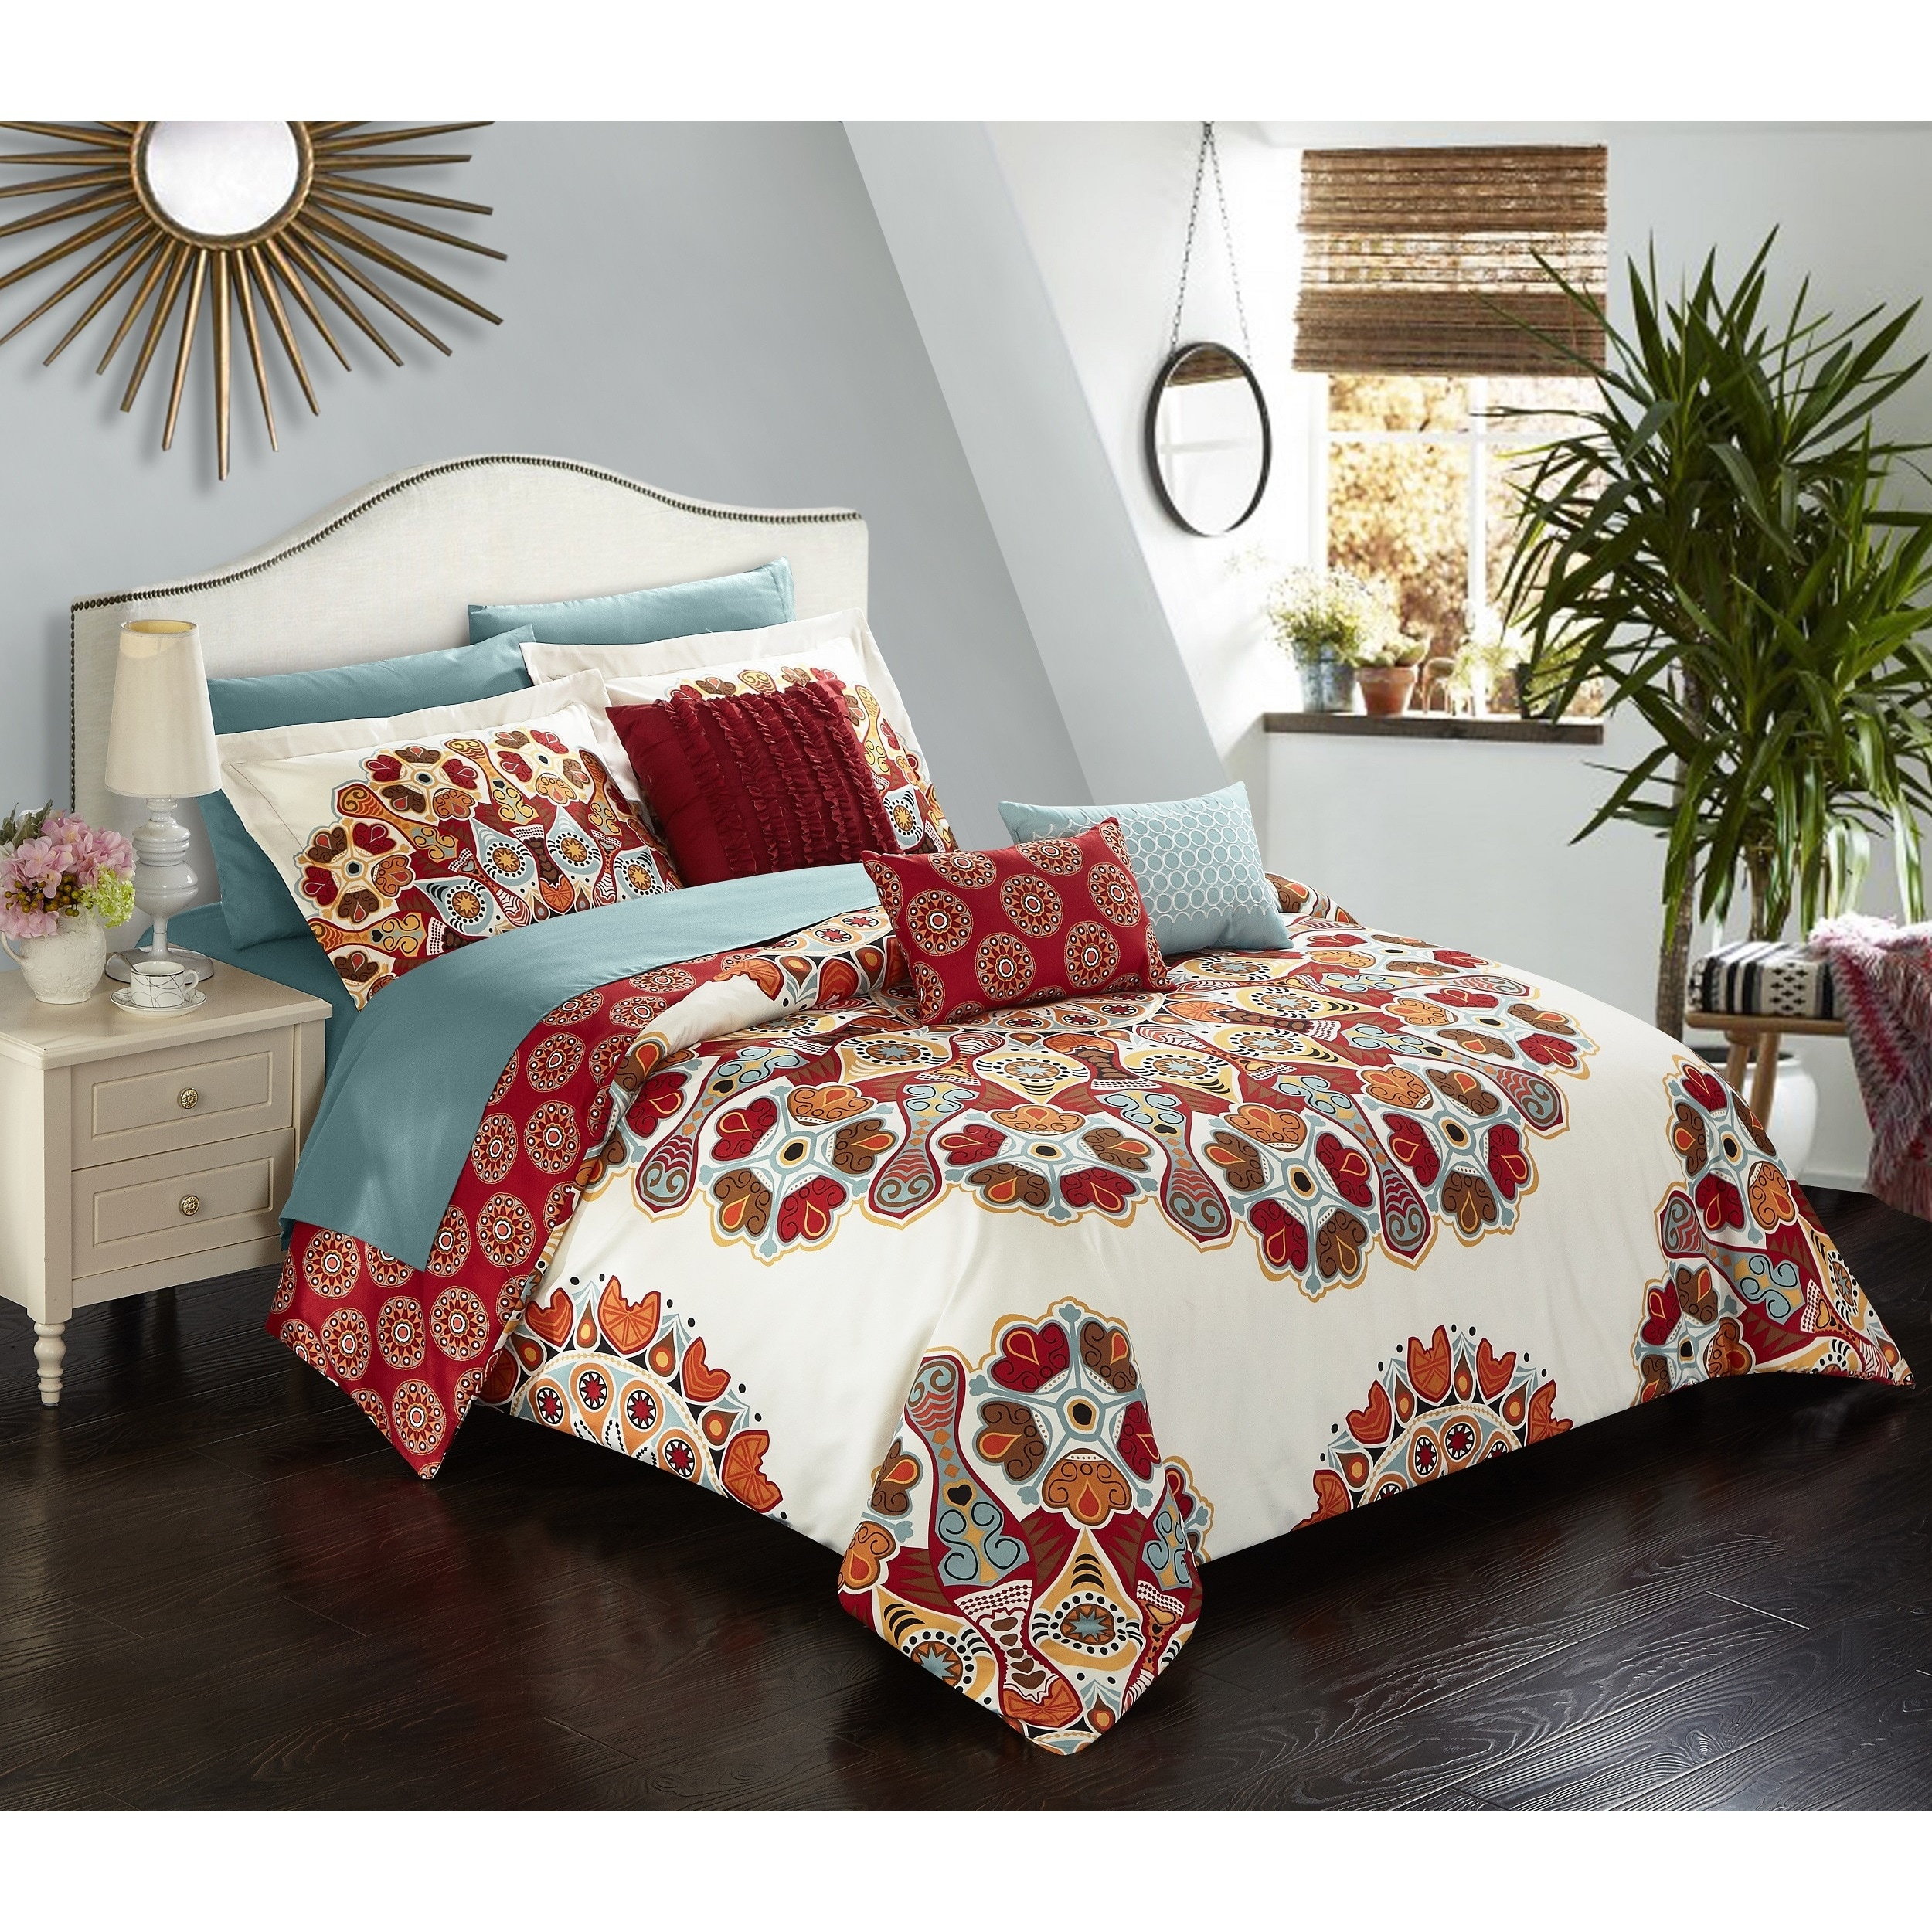 on intelligent free overstock bedding com shipping bath bed set comforter piece design product london